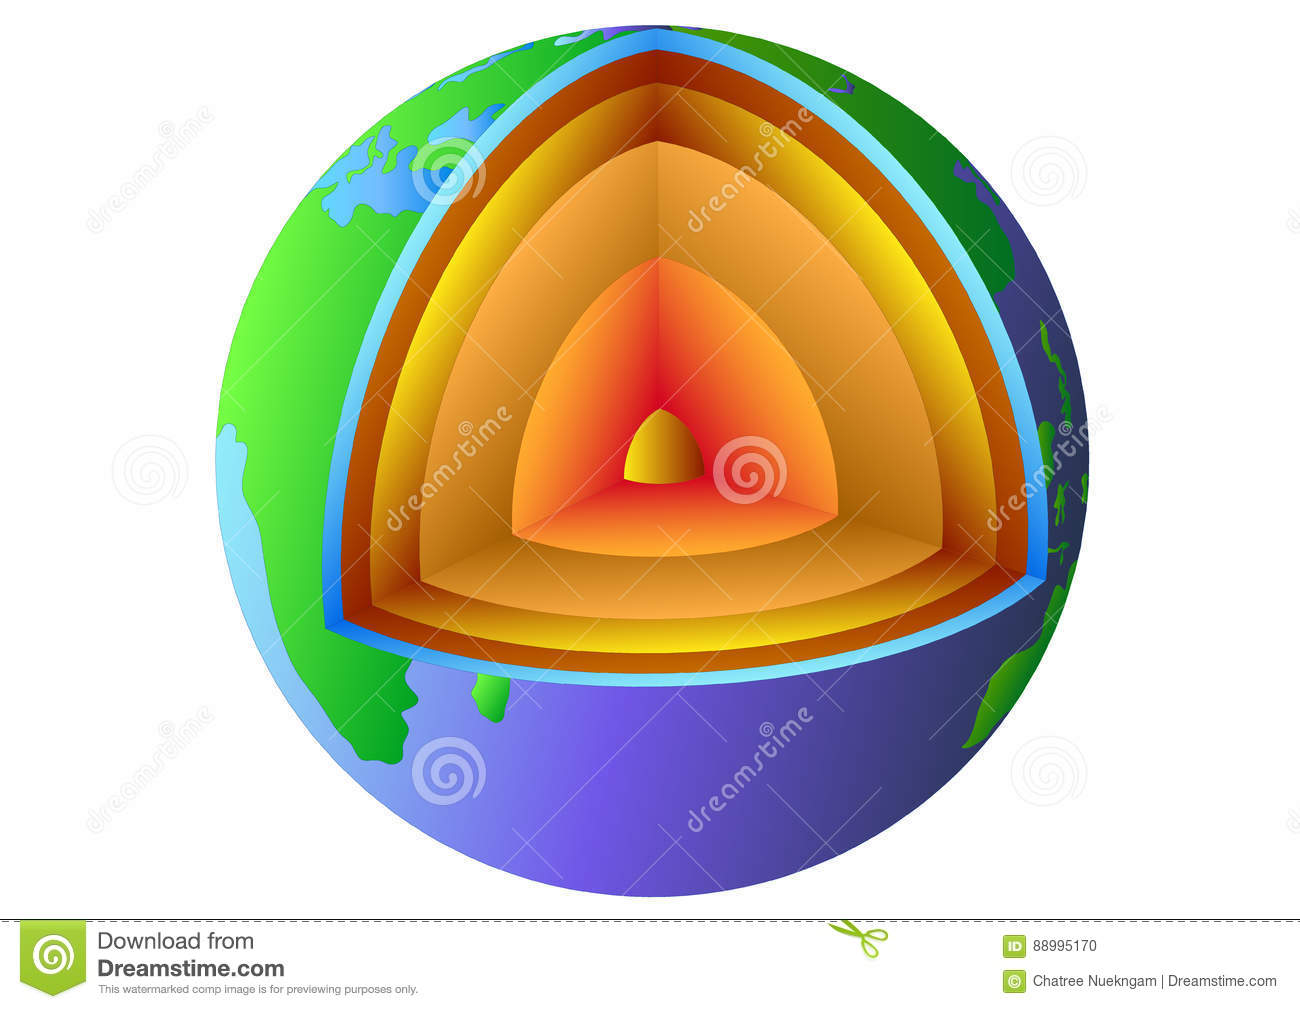 Structure of the earthdiagram stock vector illustration of structure of the earthdiagram pooptronica Images